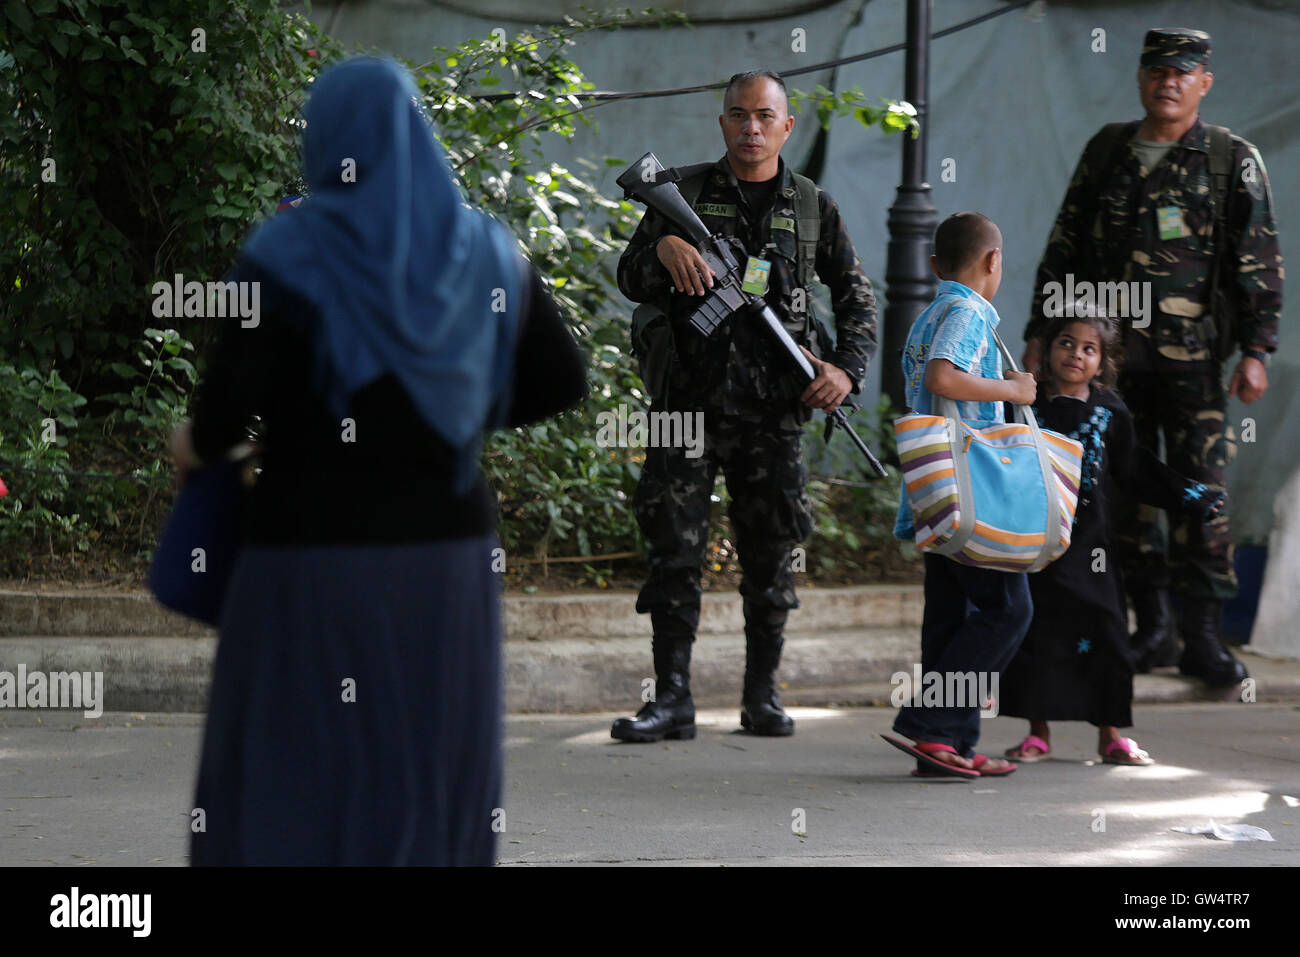 Quezon City, Philippines. 12th Sep, 2016. Soldiers of the Philippine Army patrol at the site of an Eid al-Adha celebration - Stock Image